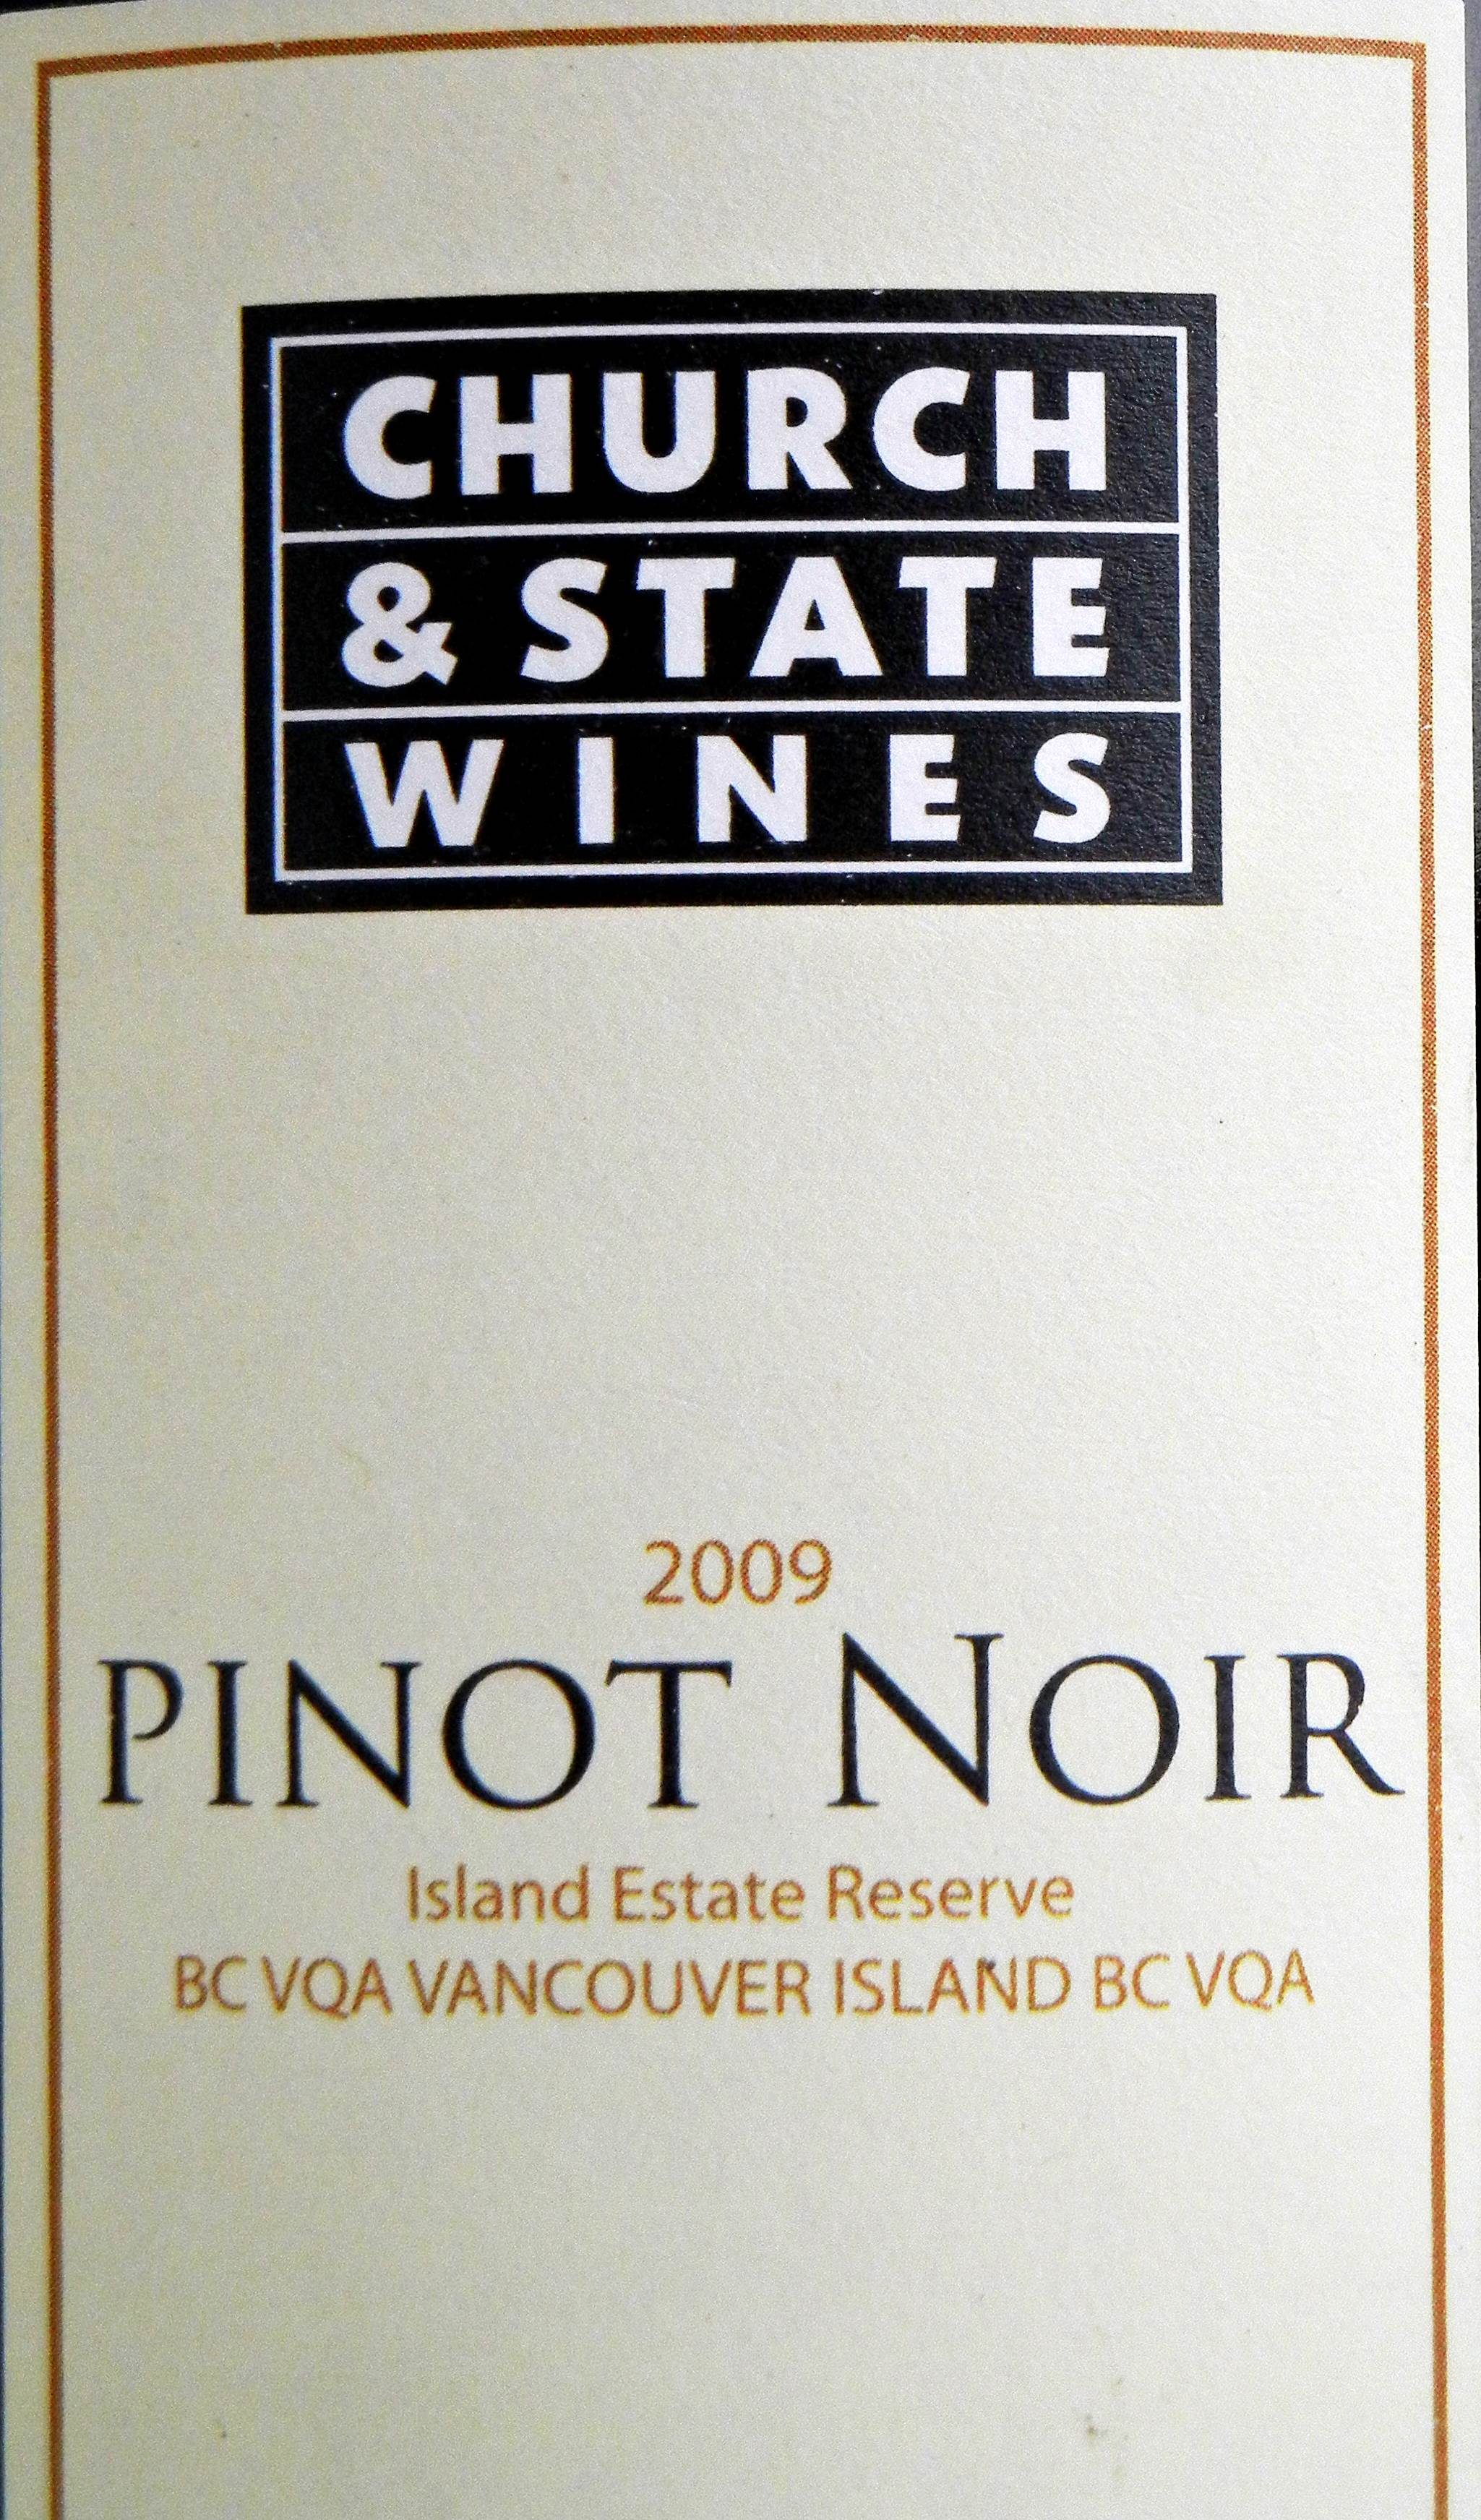 Church & State Island Estate Reserve Pinot Noir 2009 Label - BC Pinot Noir Tasting Review 26